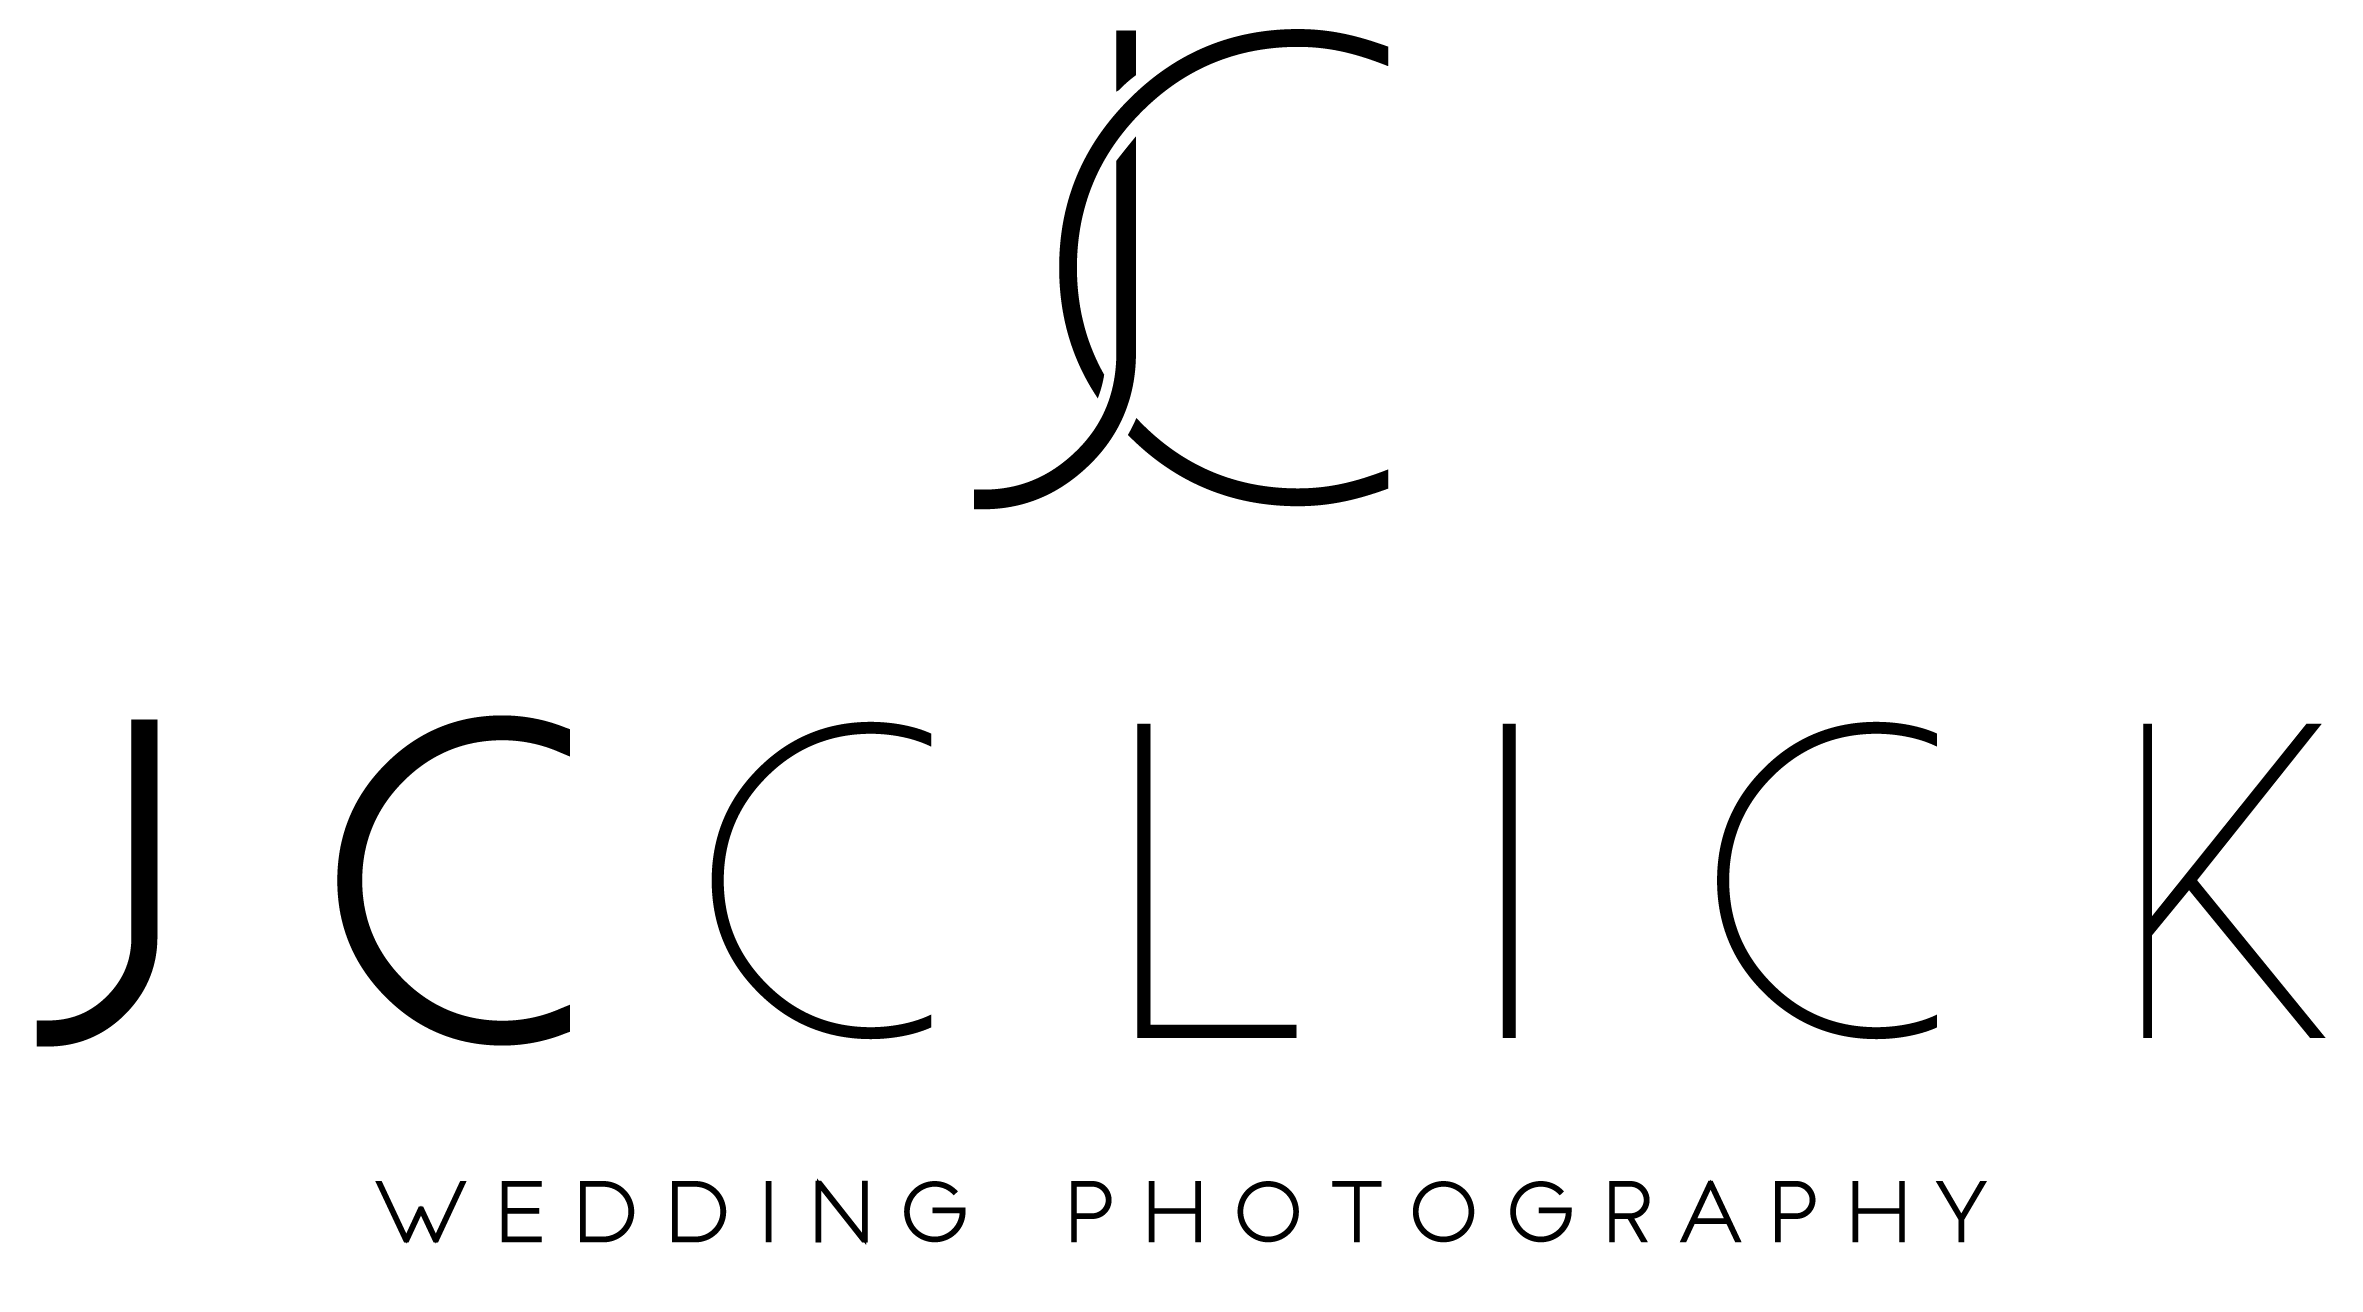 JCclick Wedding Photography & Video